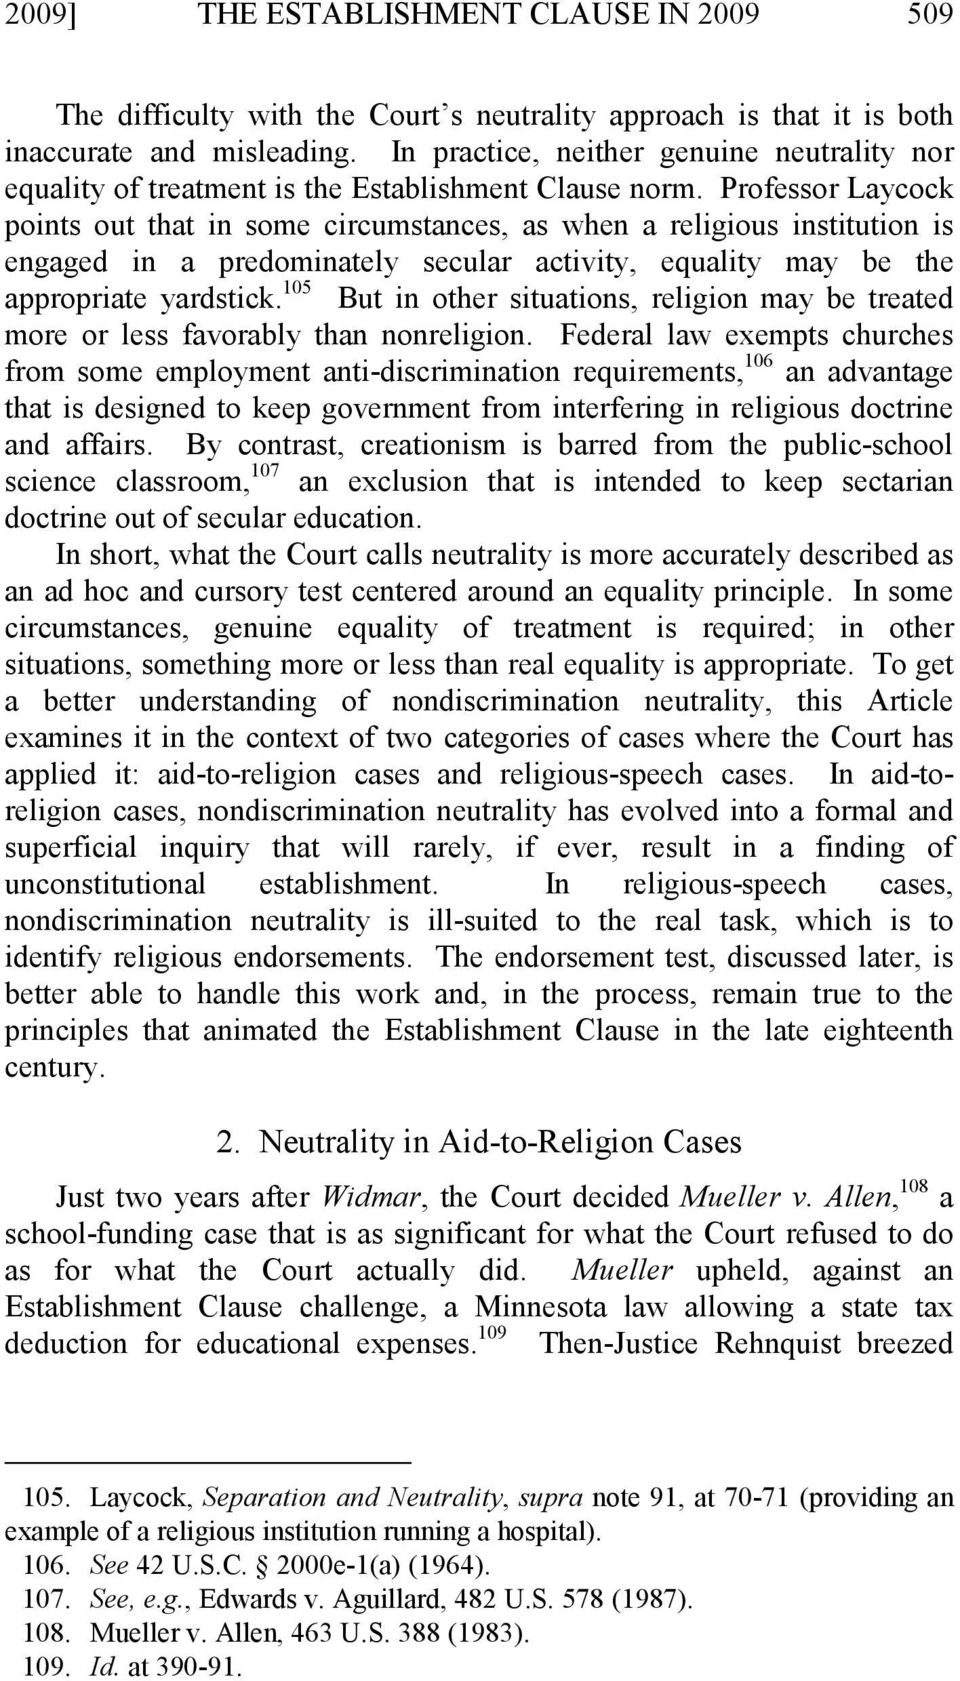 Professor Laycock points out that in some circumstances, as when a religious institution is engaged in a predominately secular activity, equality may be the appropriate yardstick.